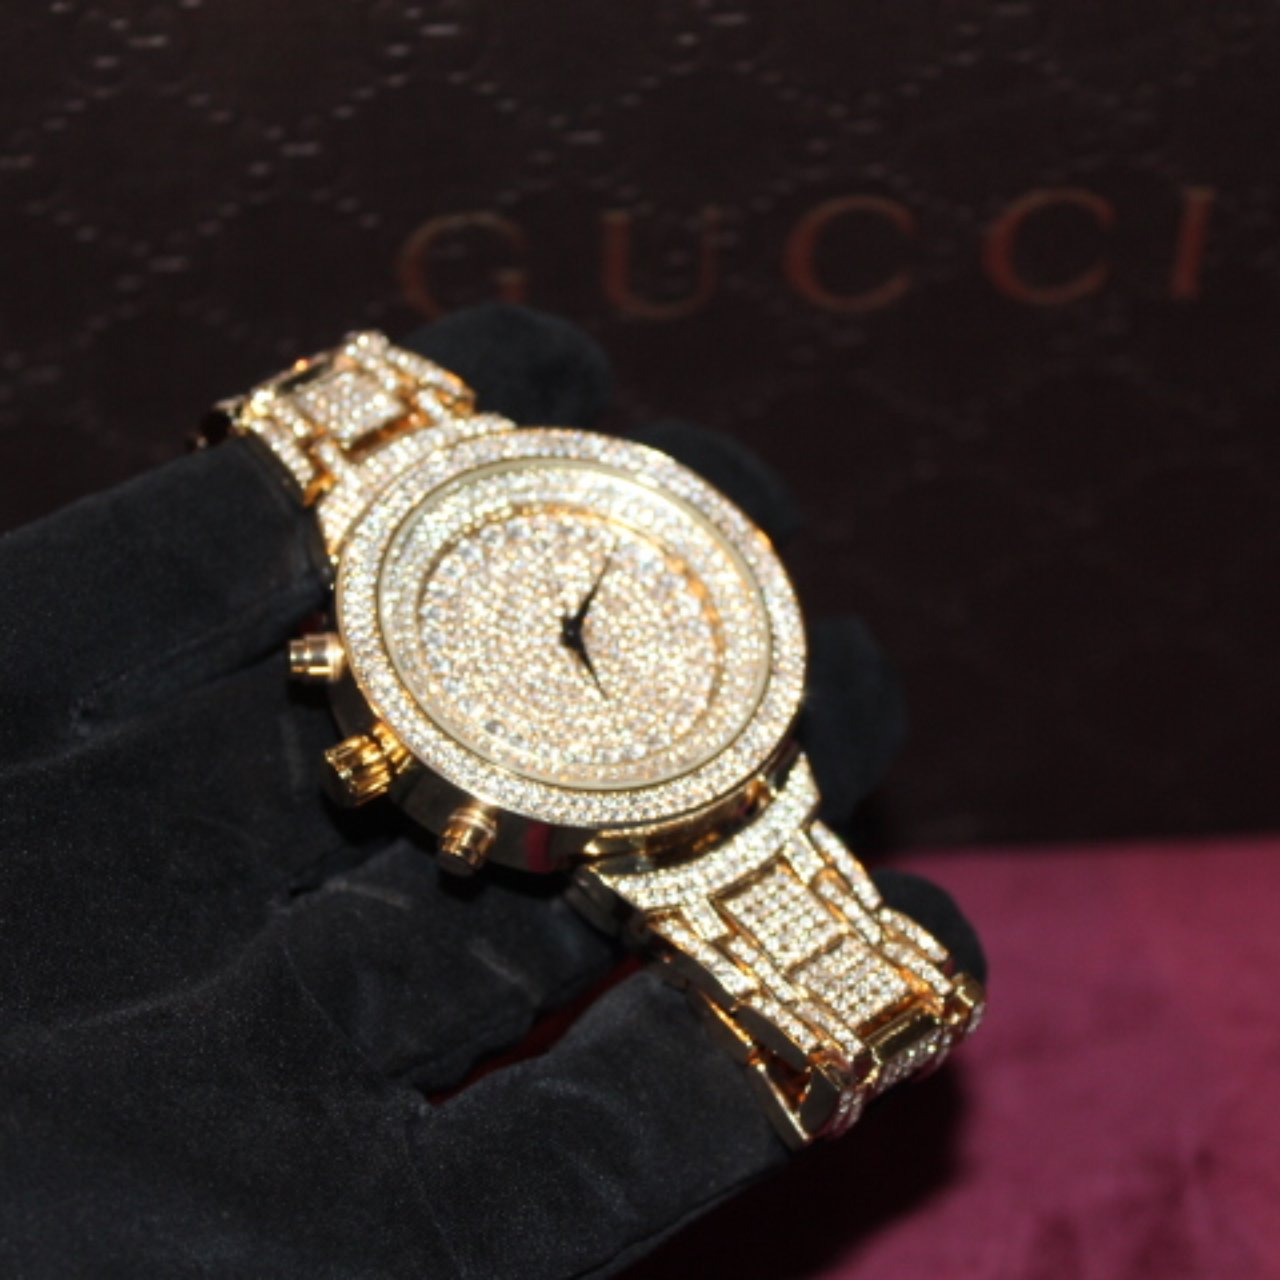 XL Gold Fully Iced Out Men's Watch - Vintique Clothing